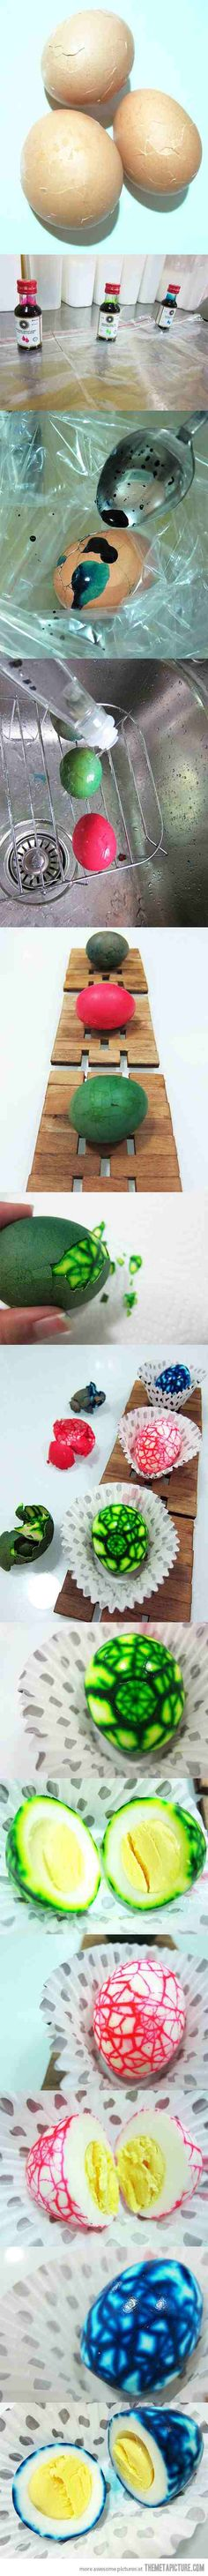 Something different for Easter! the kids will get a kick out of this!